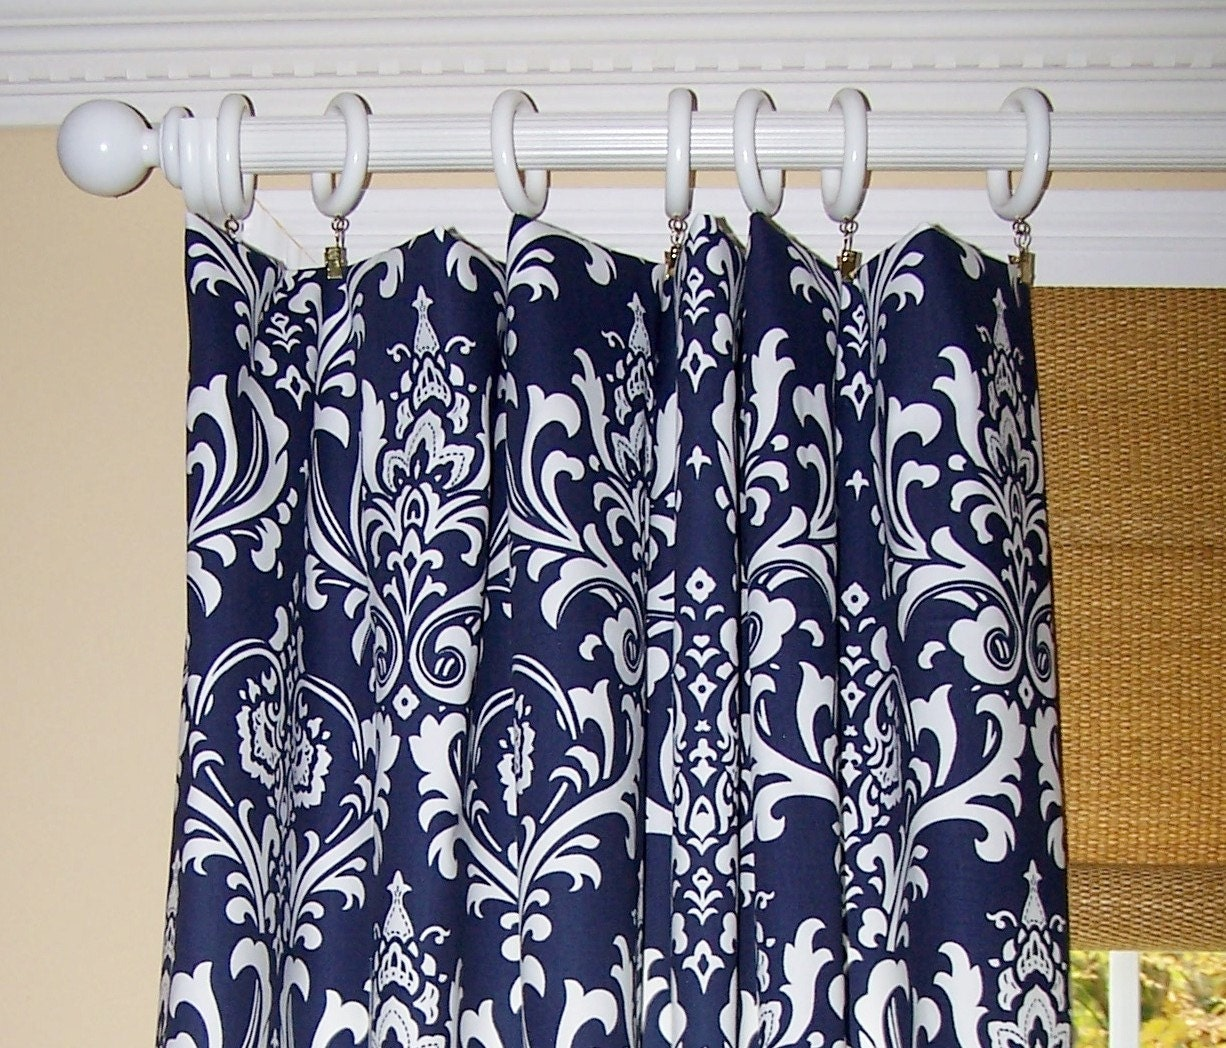 Hot Pink Shower Curtain Hooks Navy Blue and White Chevron